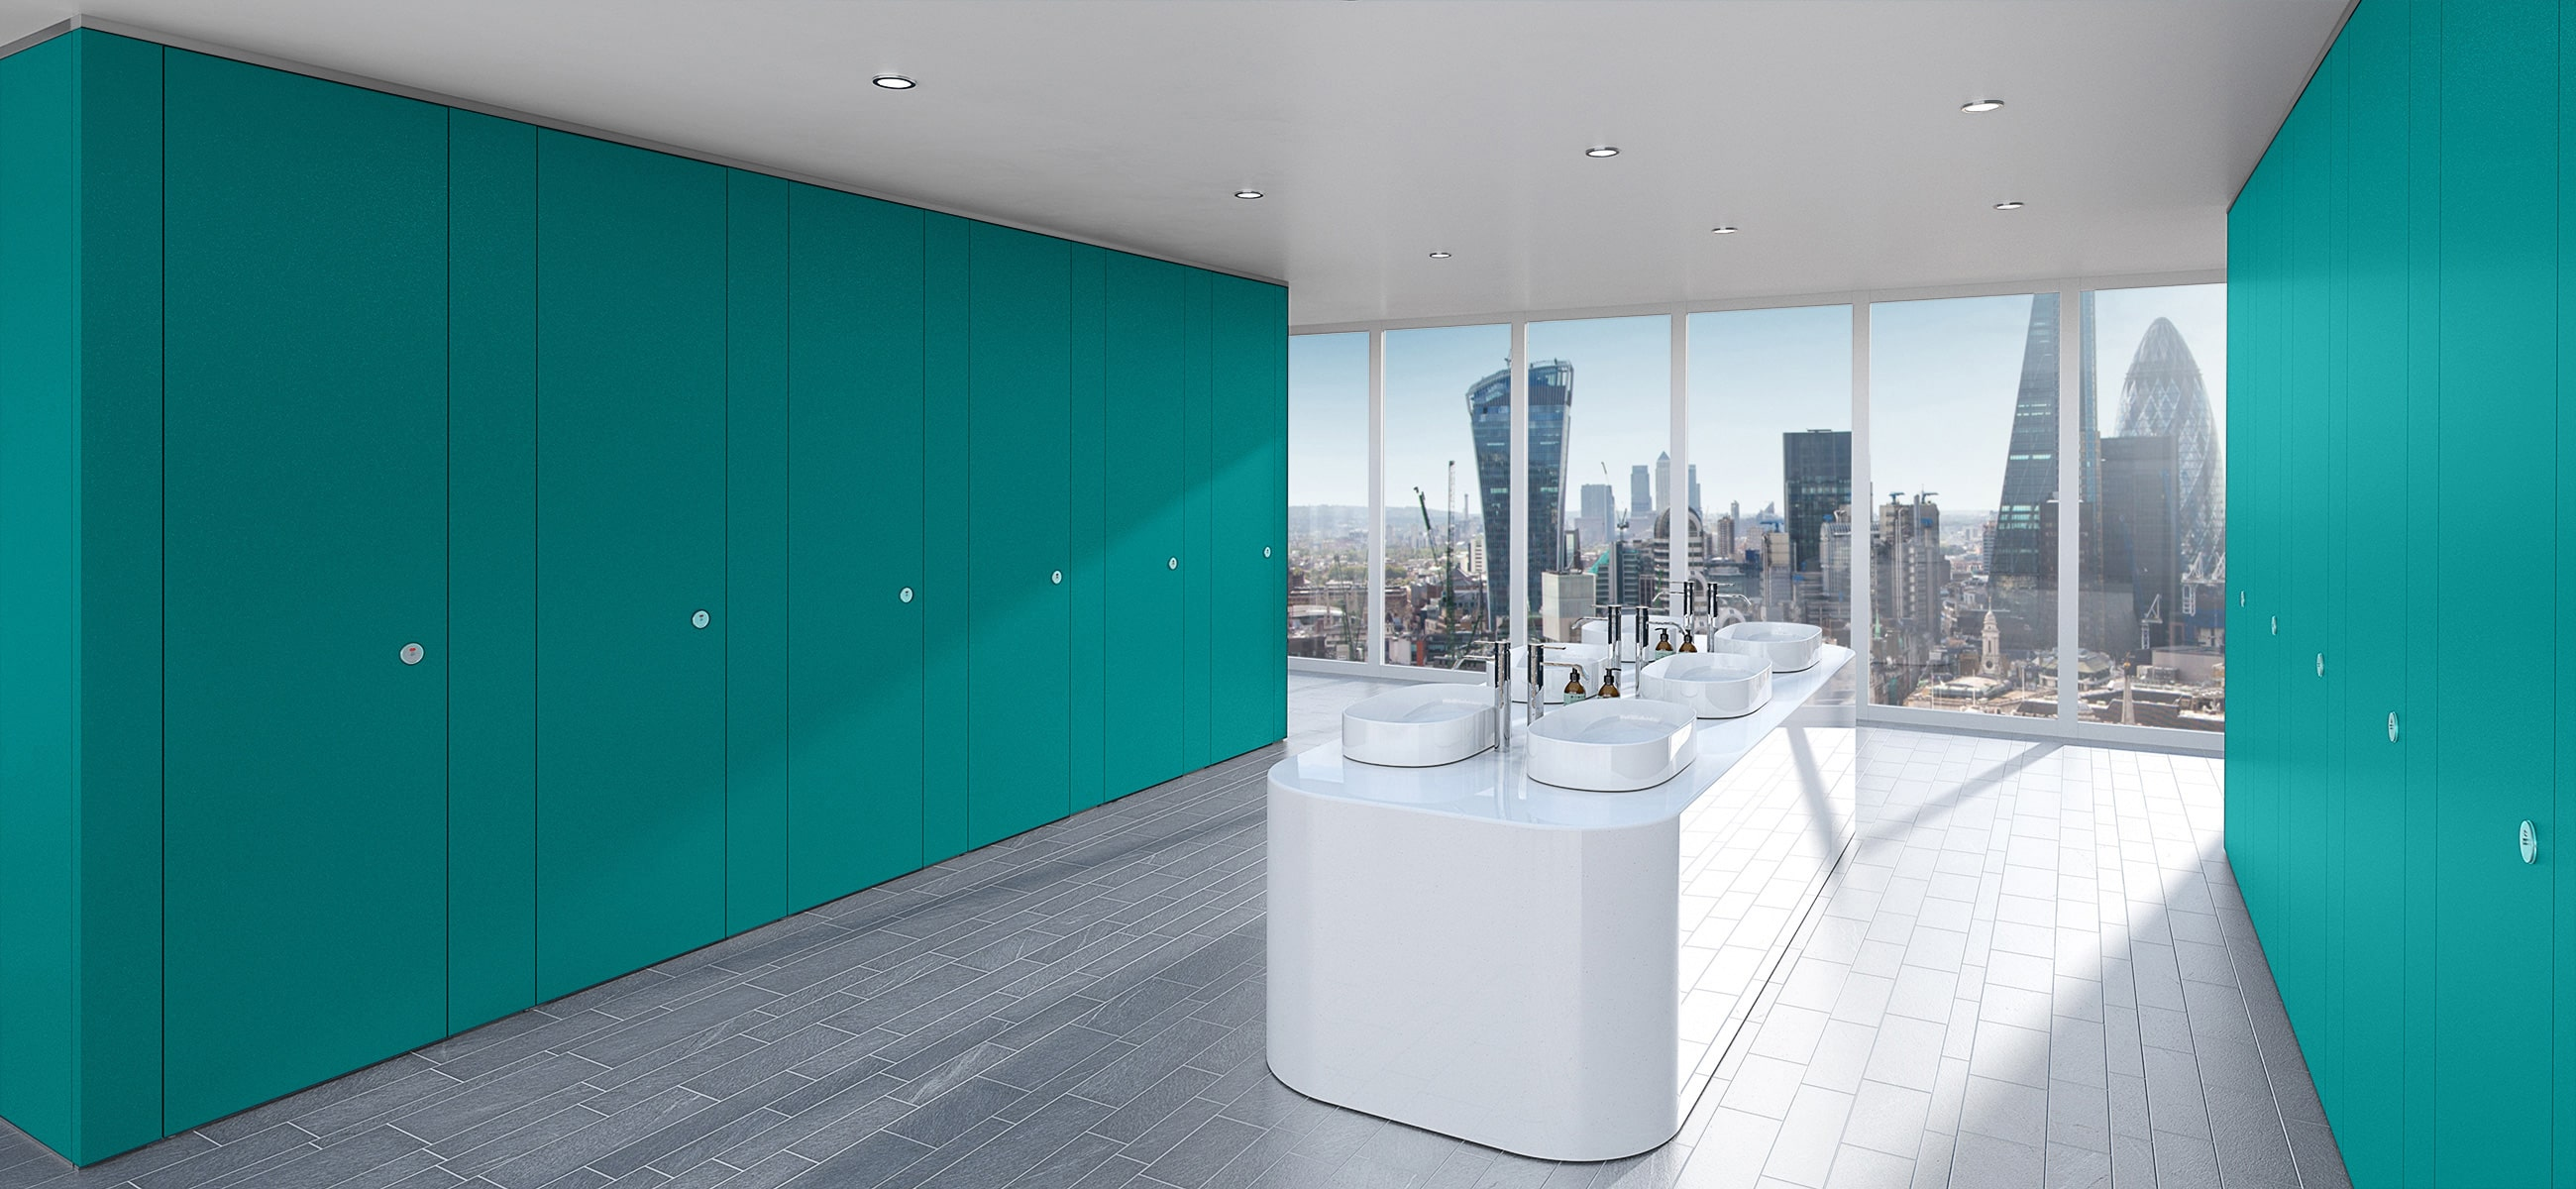 Sylan Commercial Washroom Cubicles in Teal ColourCoat